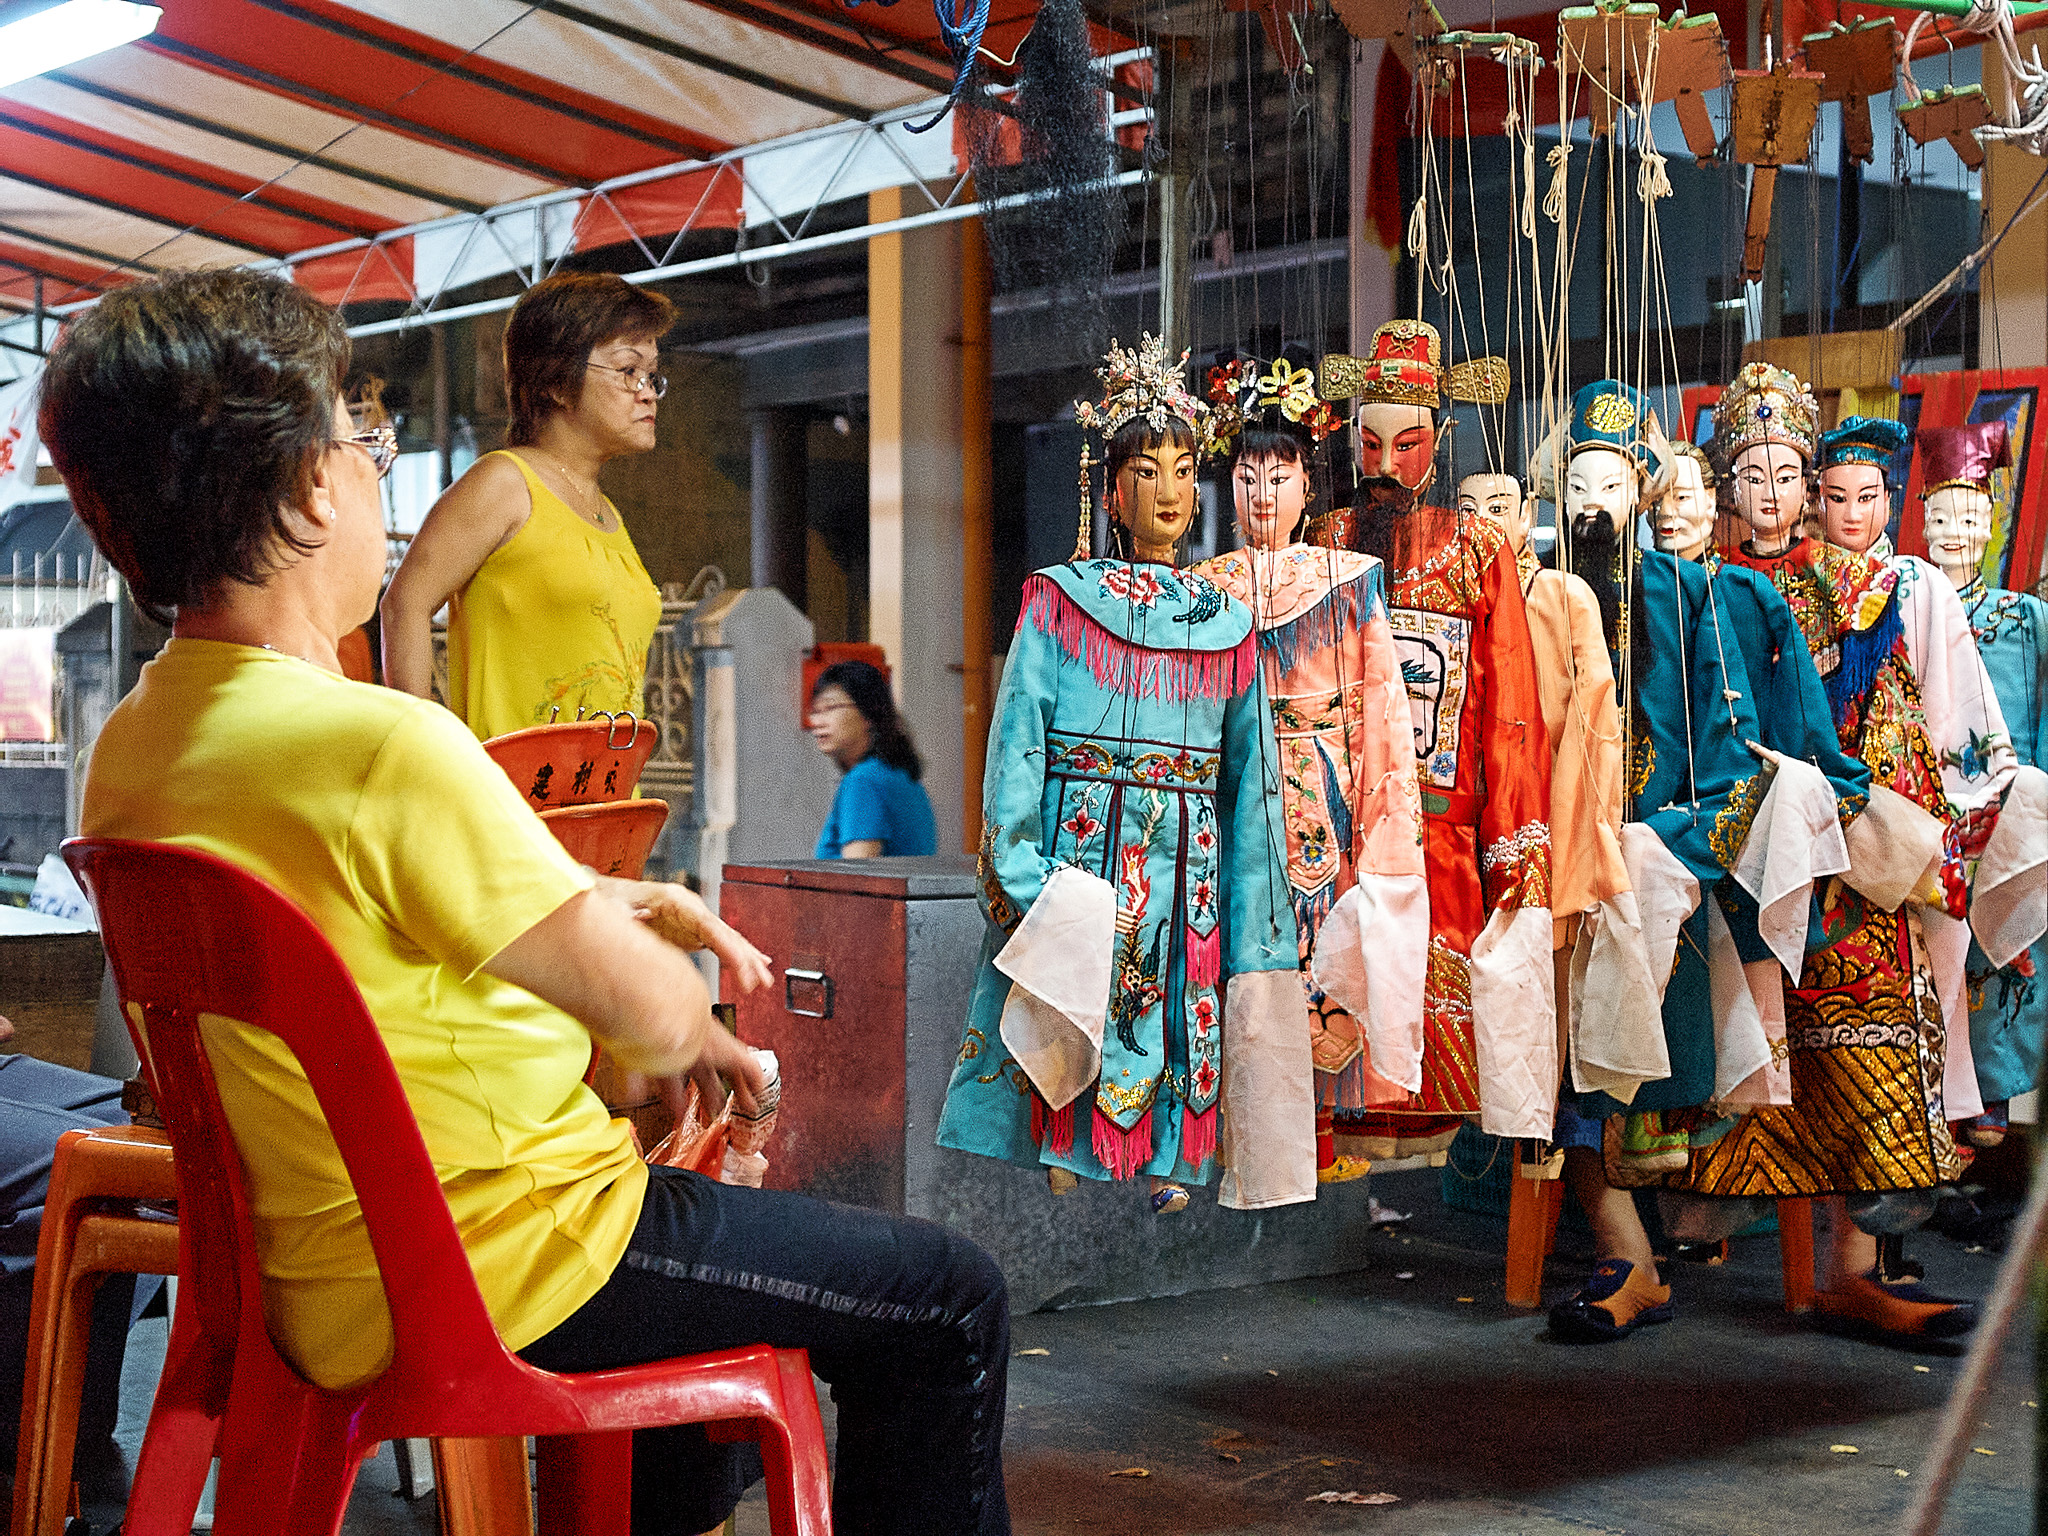 Women puppeteers with their puppets, taking a break, Serangoon Road, Singapore